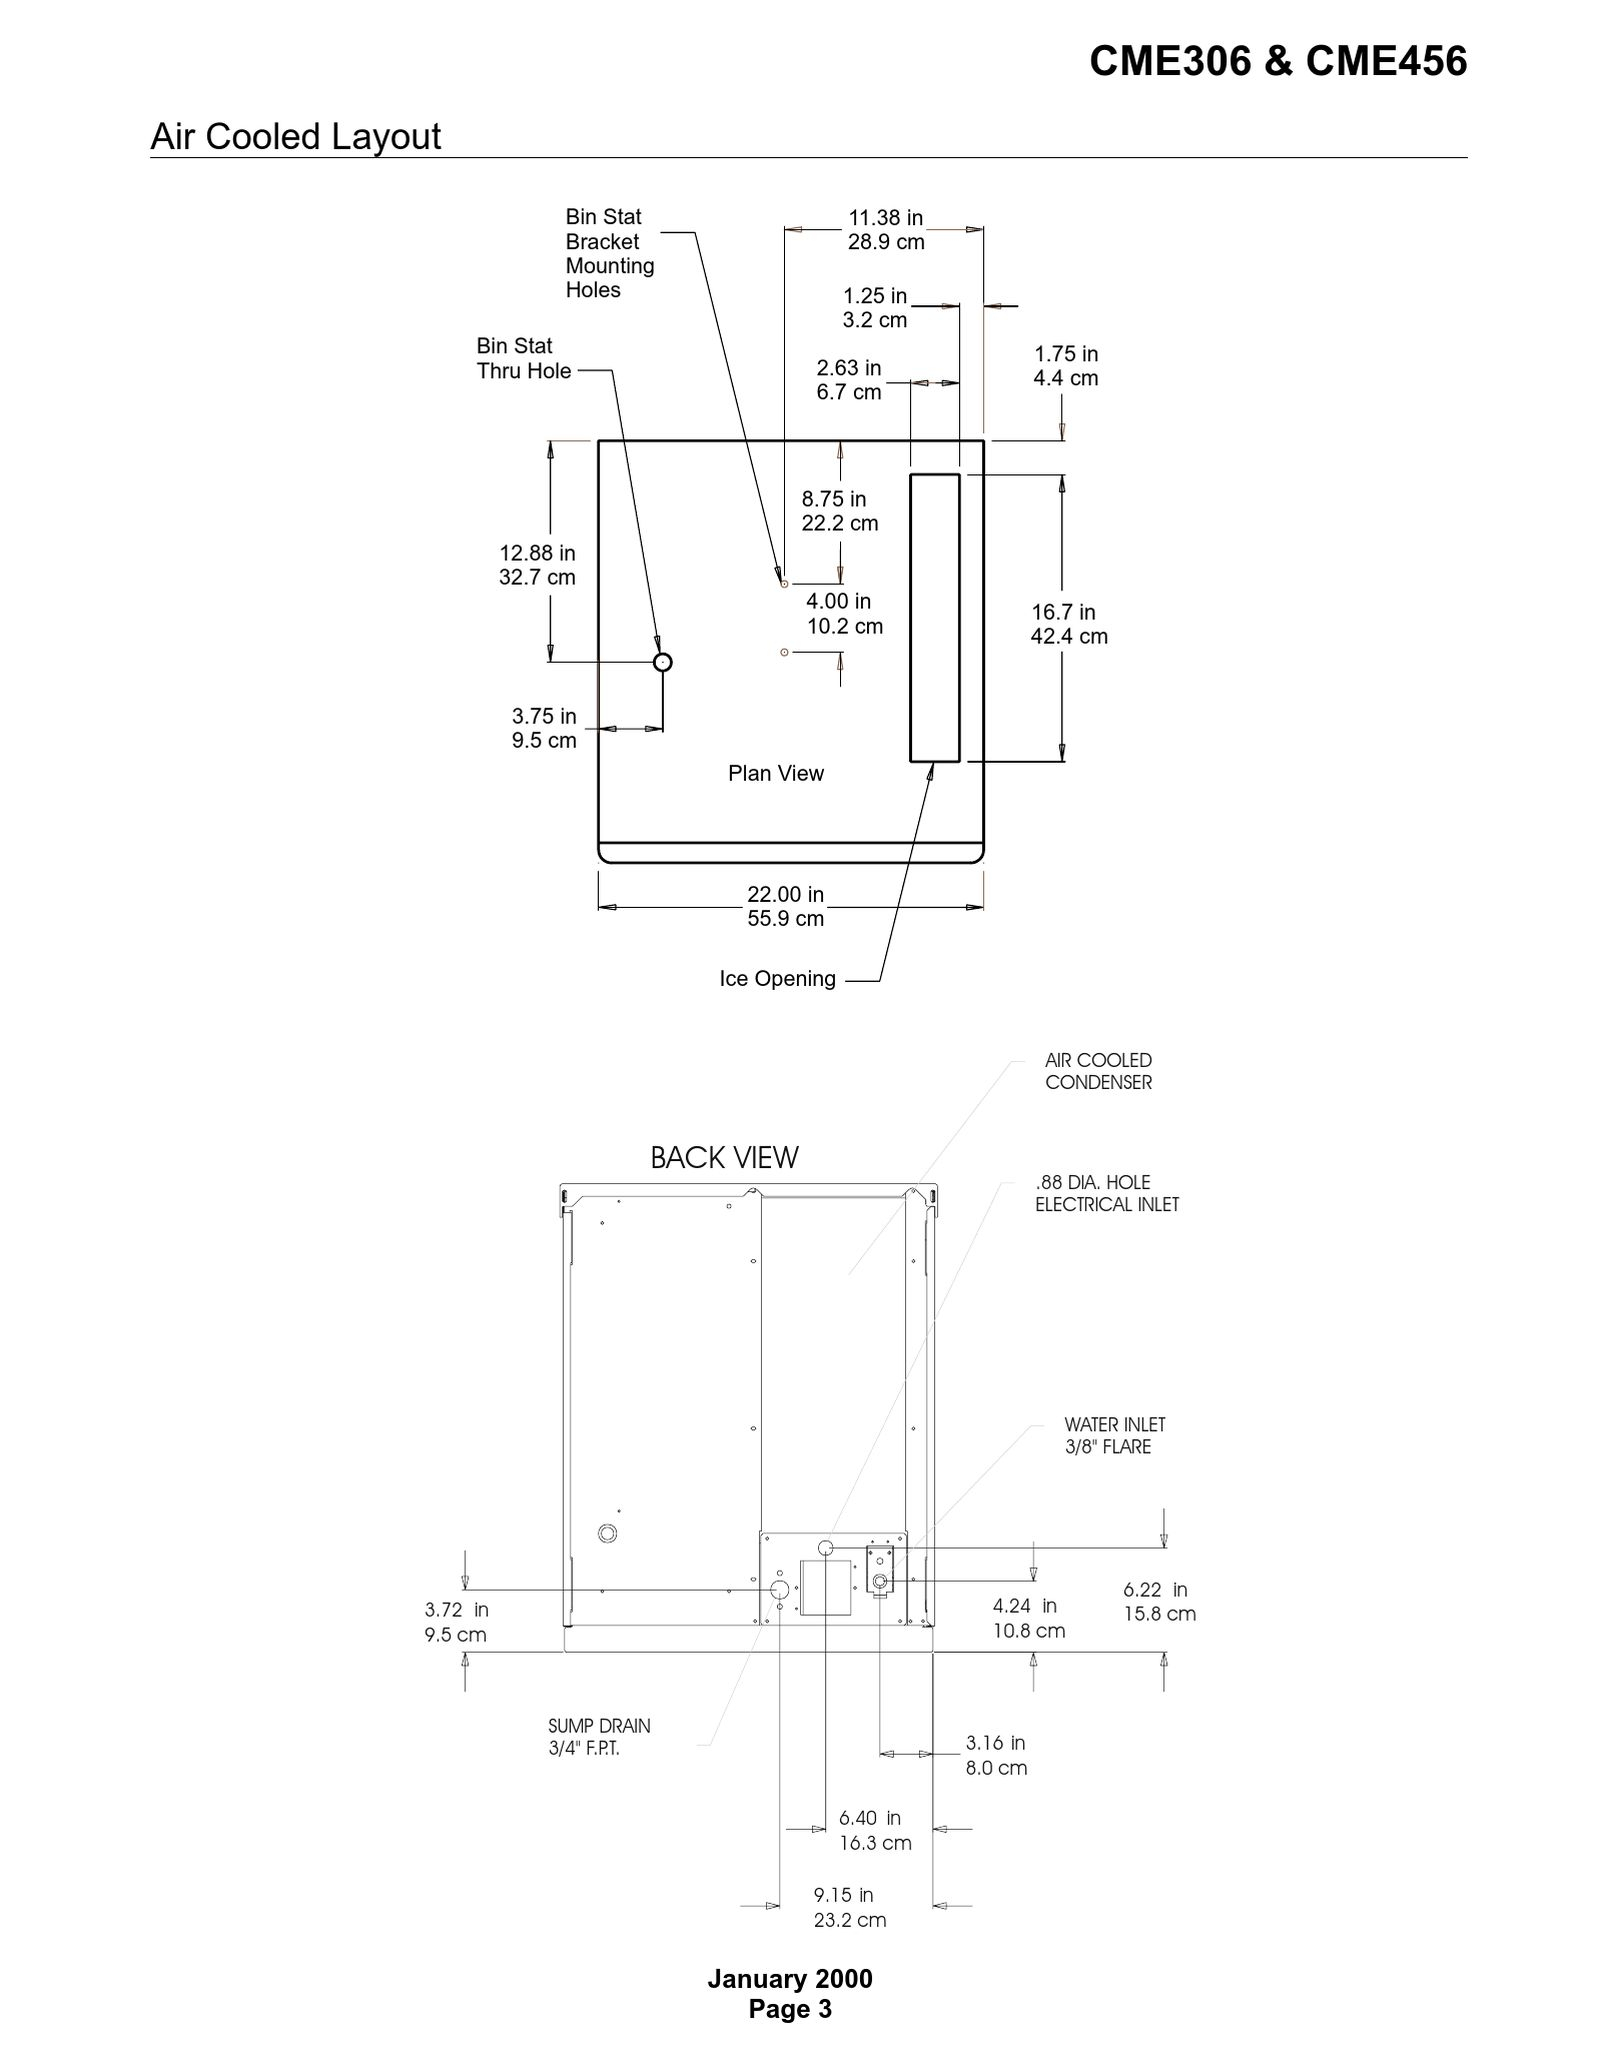 scotsman ice machine wiring diagram Download-Scotsman Ice Machine Wiring Diagram Fresh Service Manual Cme306 Cme456 8-j